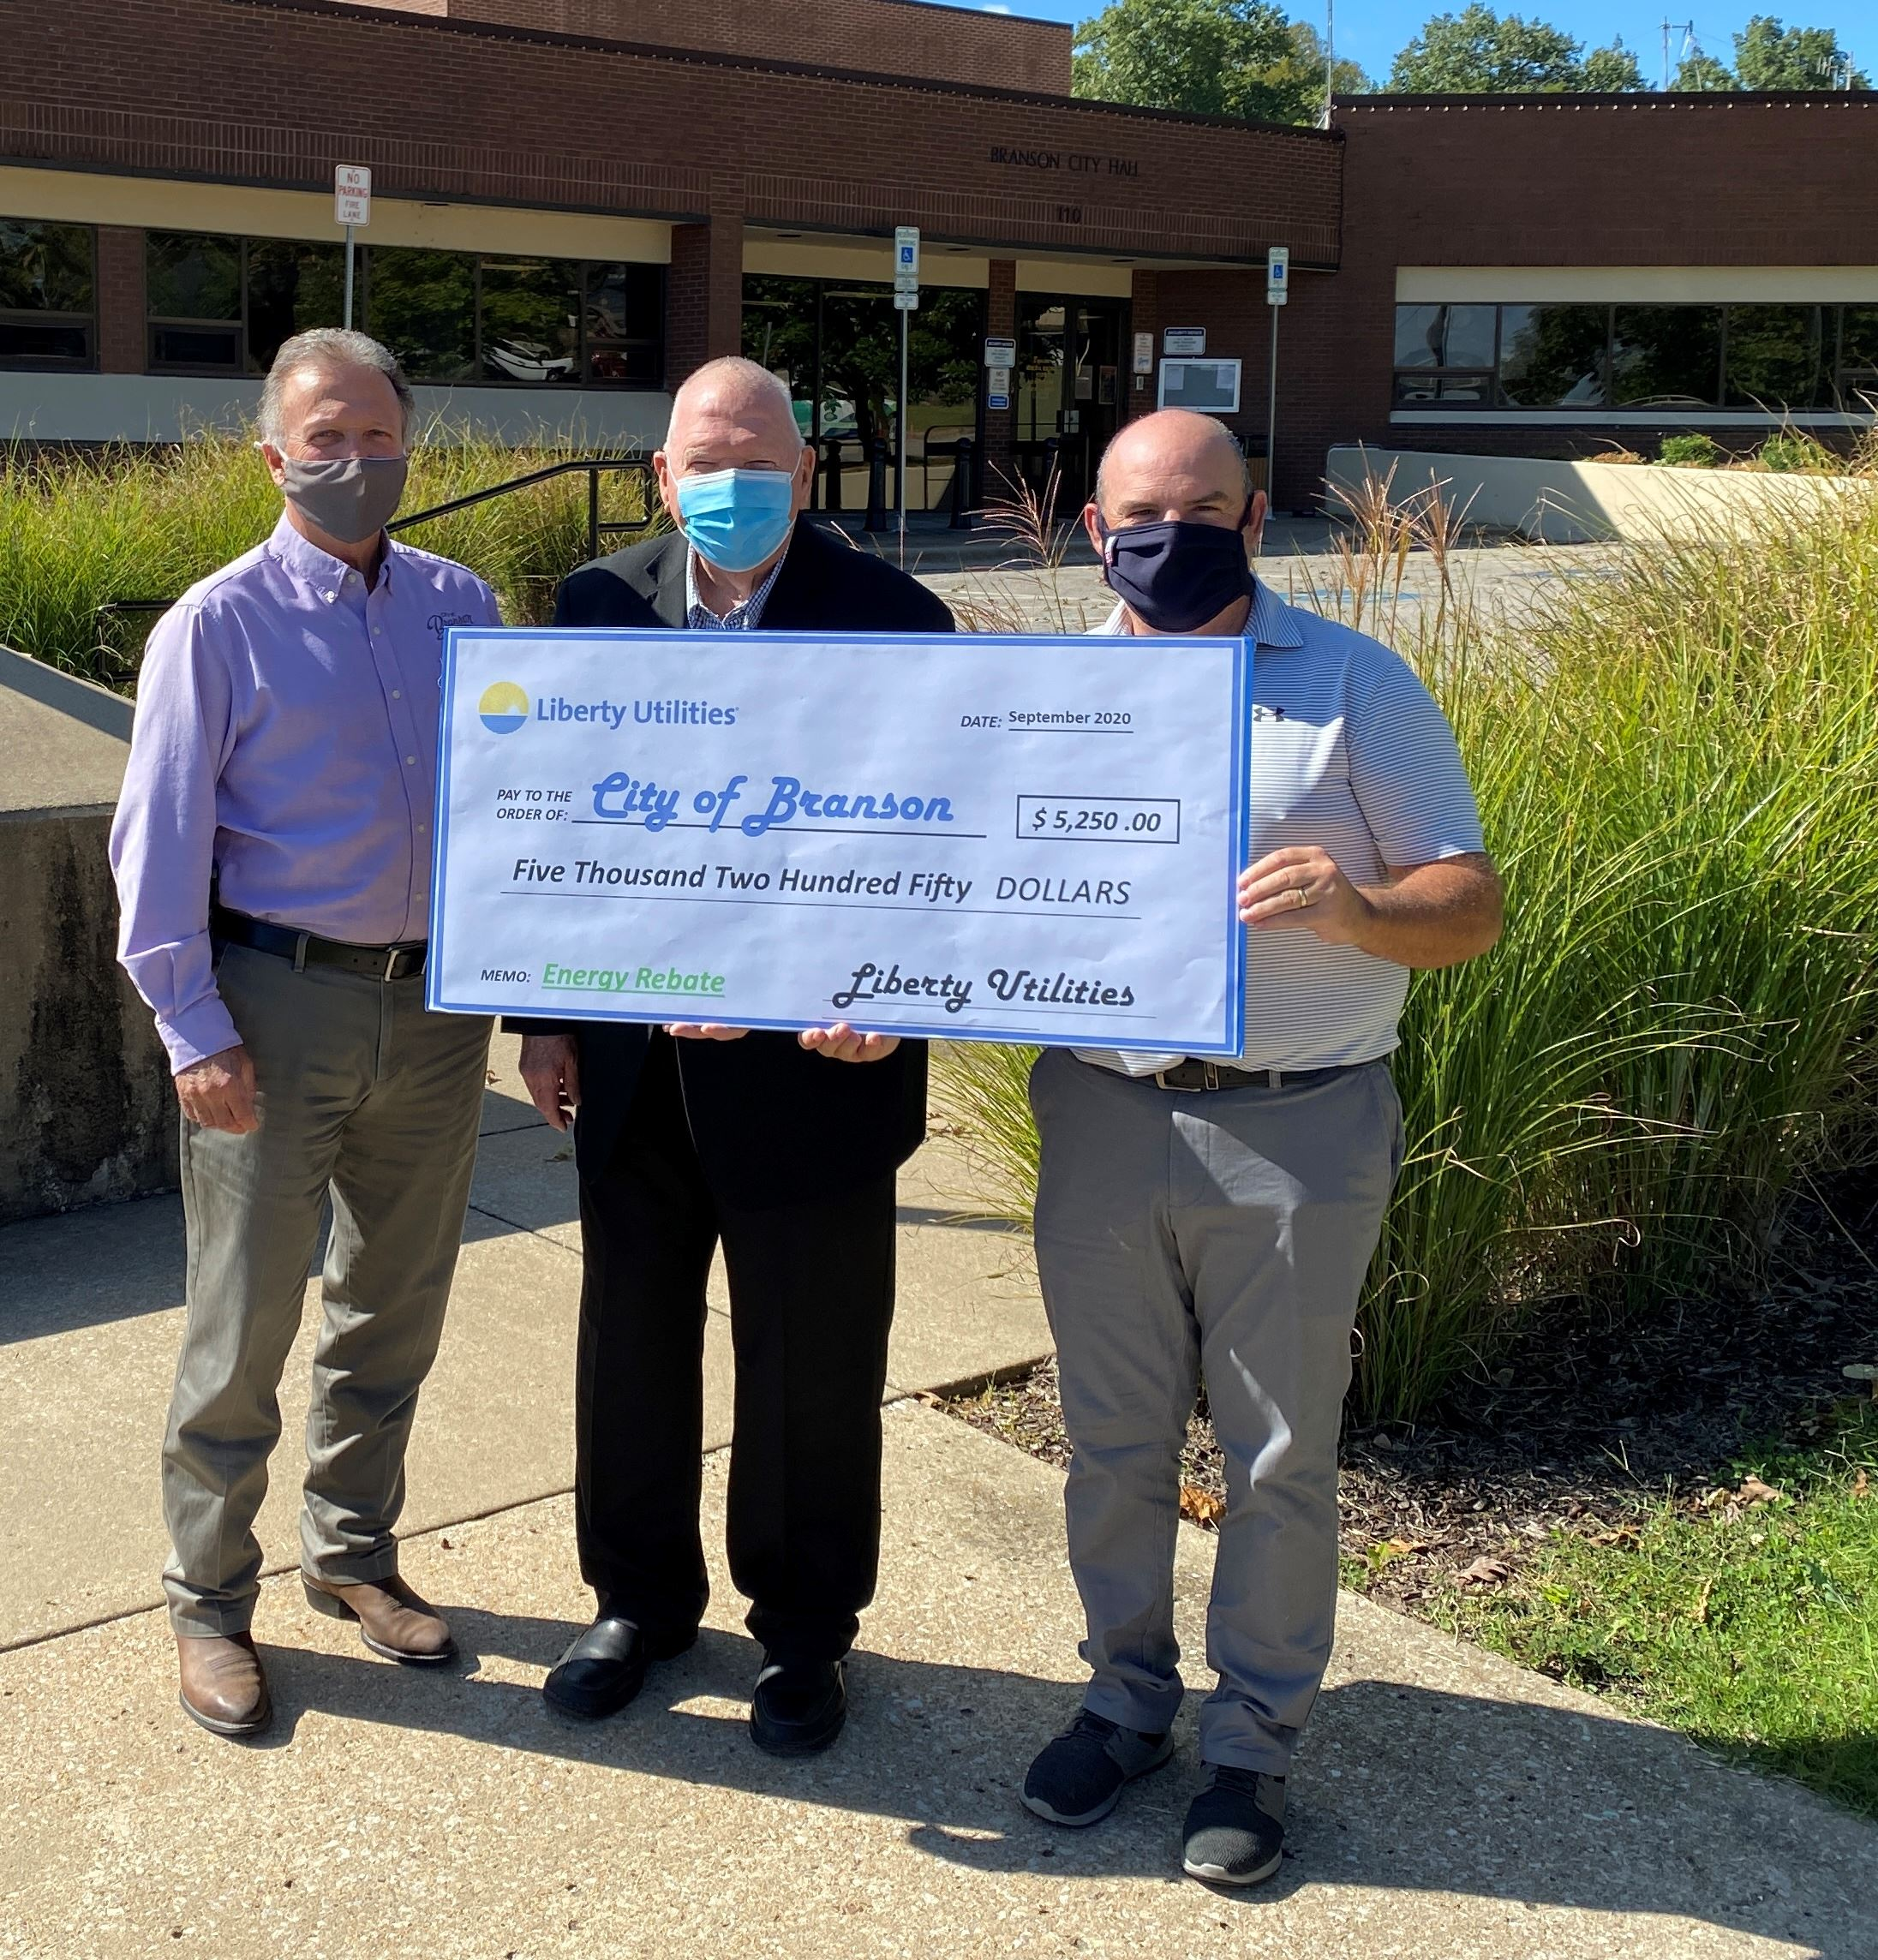 Liberty Utilities Rebate Check Presentation